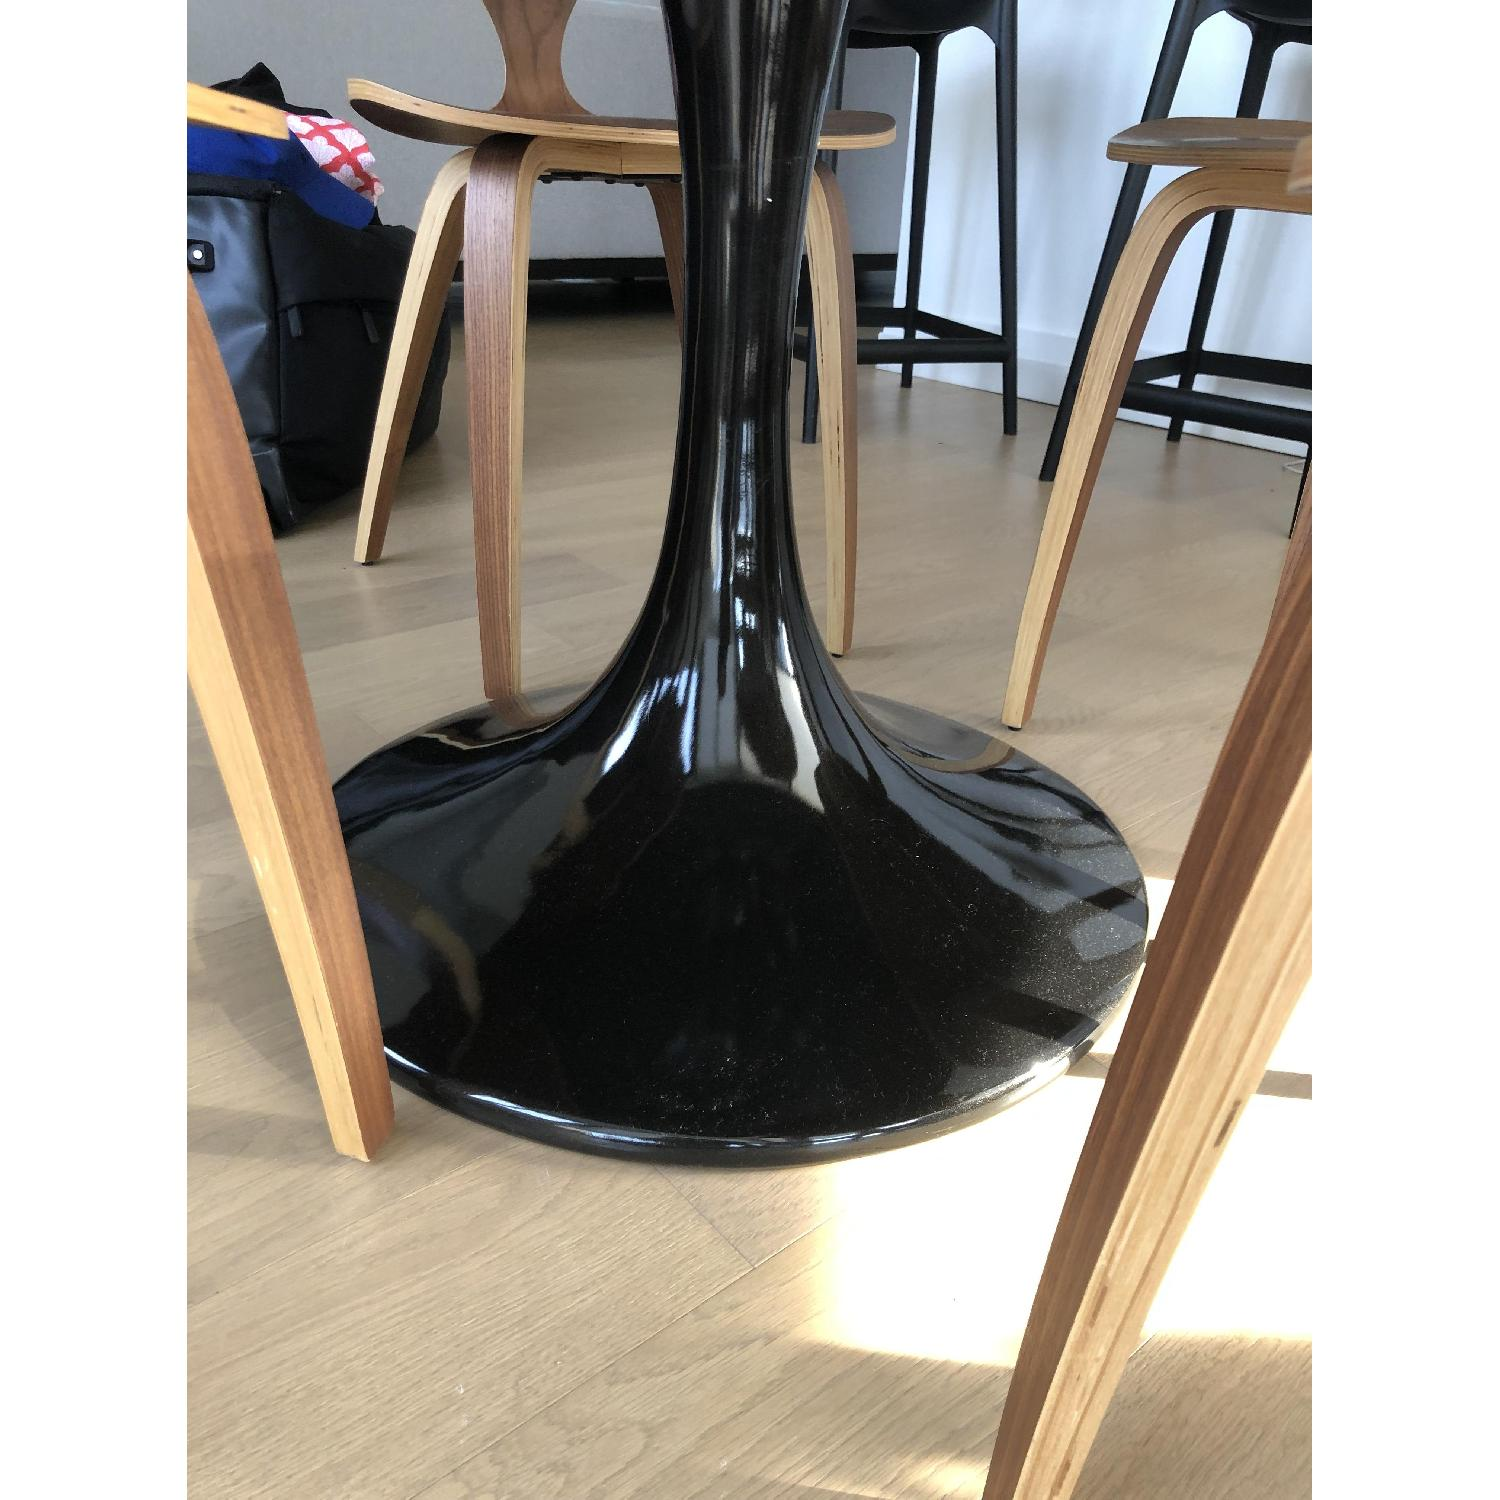 Fine Mod Imports Dining Table - image-5